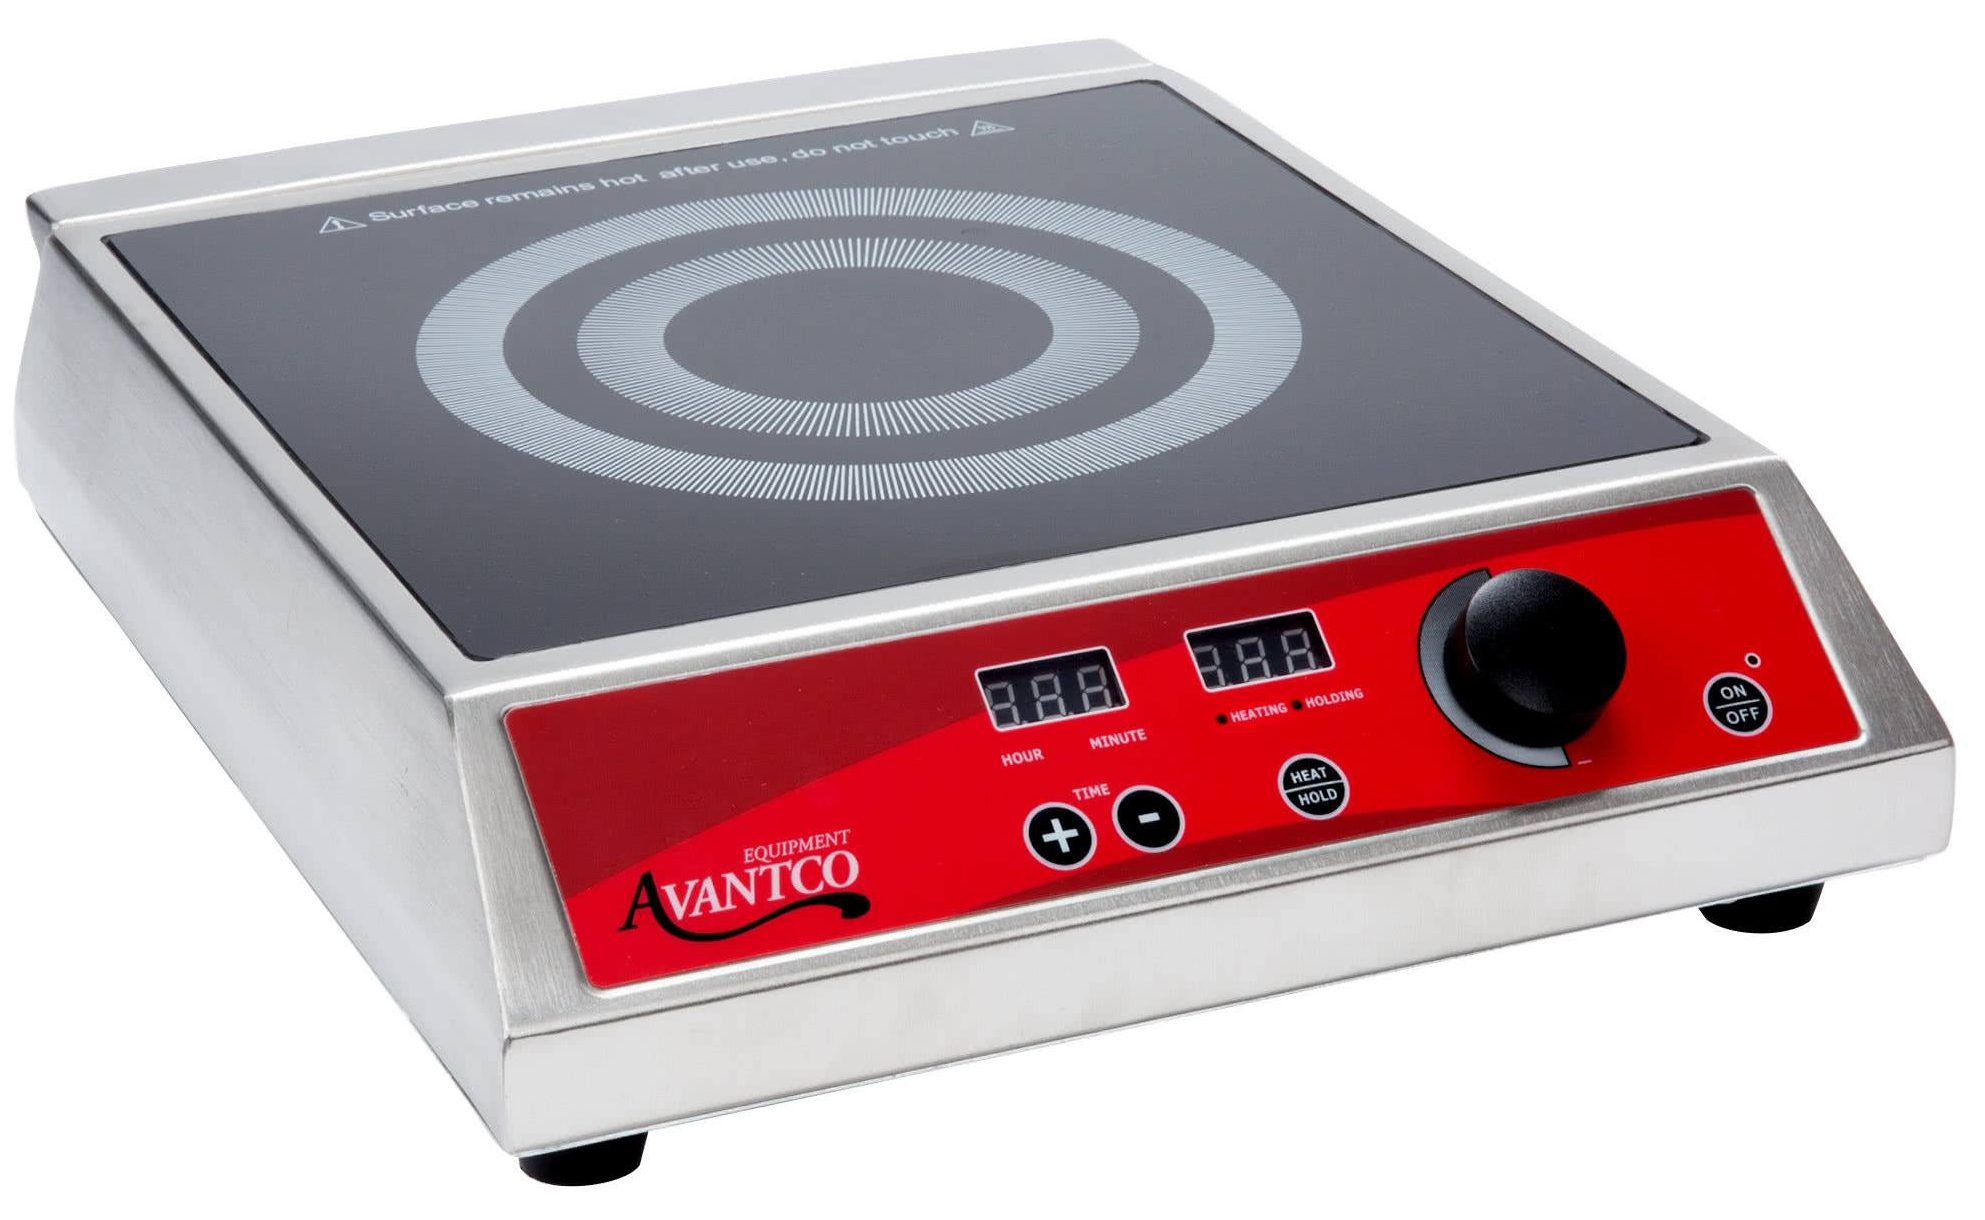 Induction Cooktops Reviews Induction Cooktop Reviews Best Portable Induction Cooktop